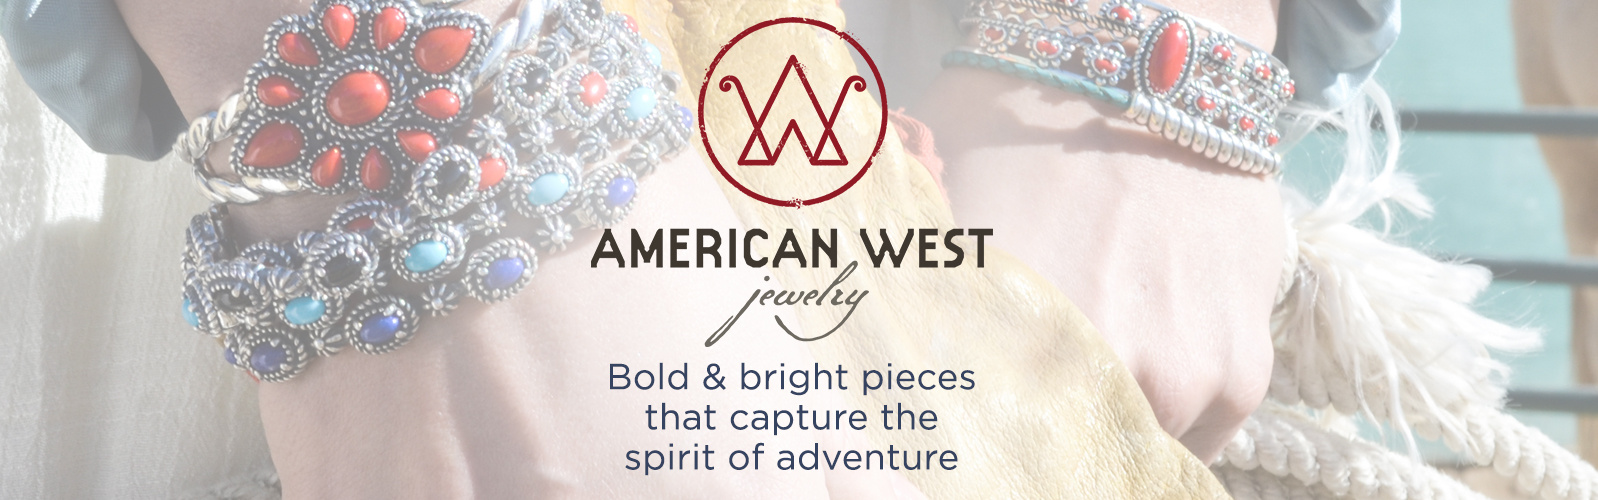 American West. Bold & bright pieces that capture the spirit of adventure